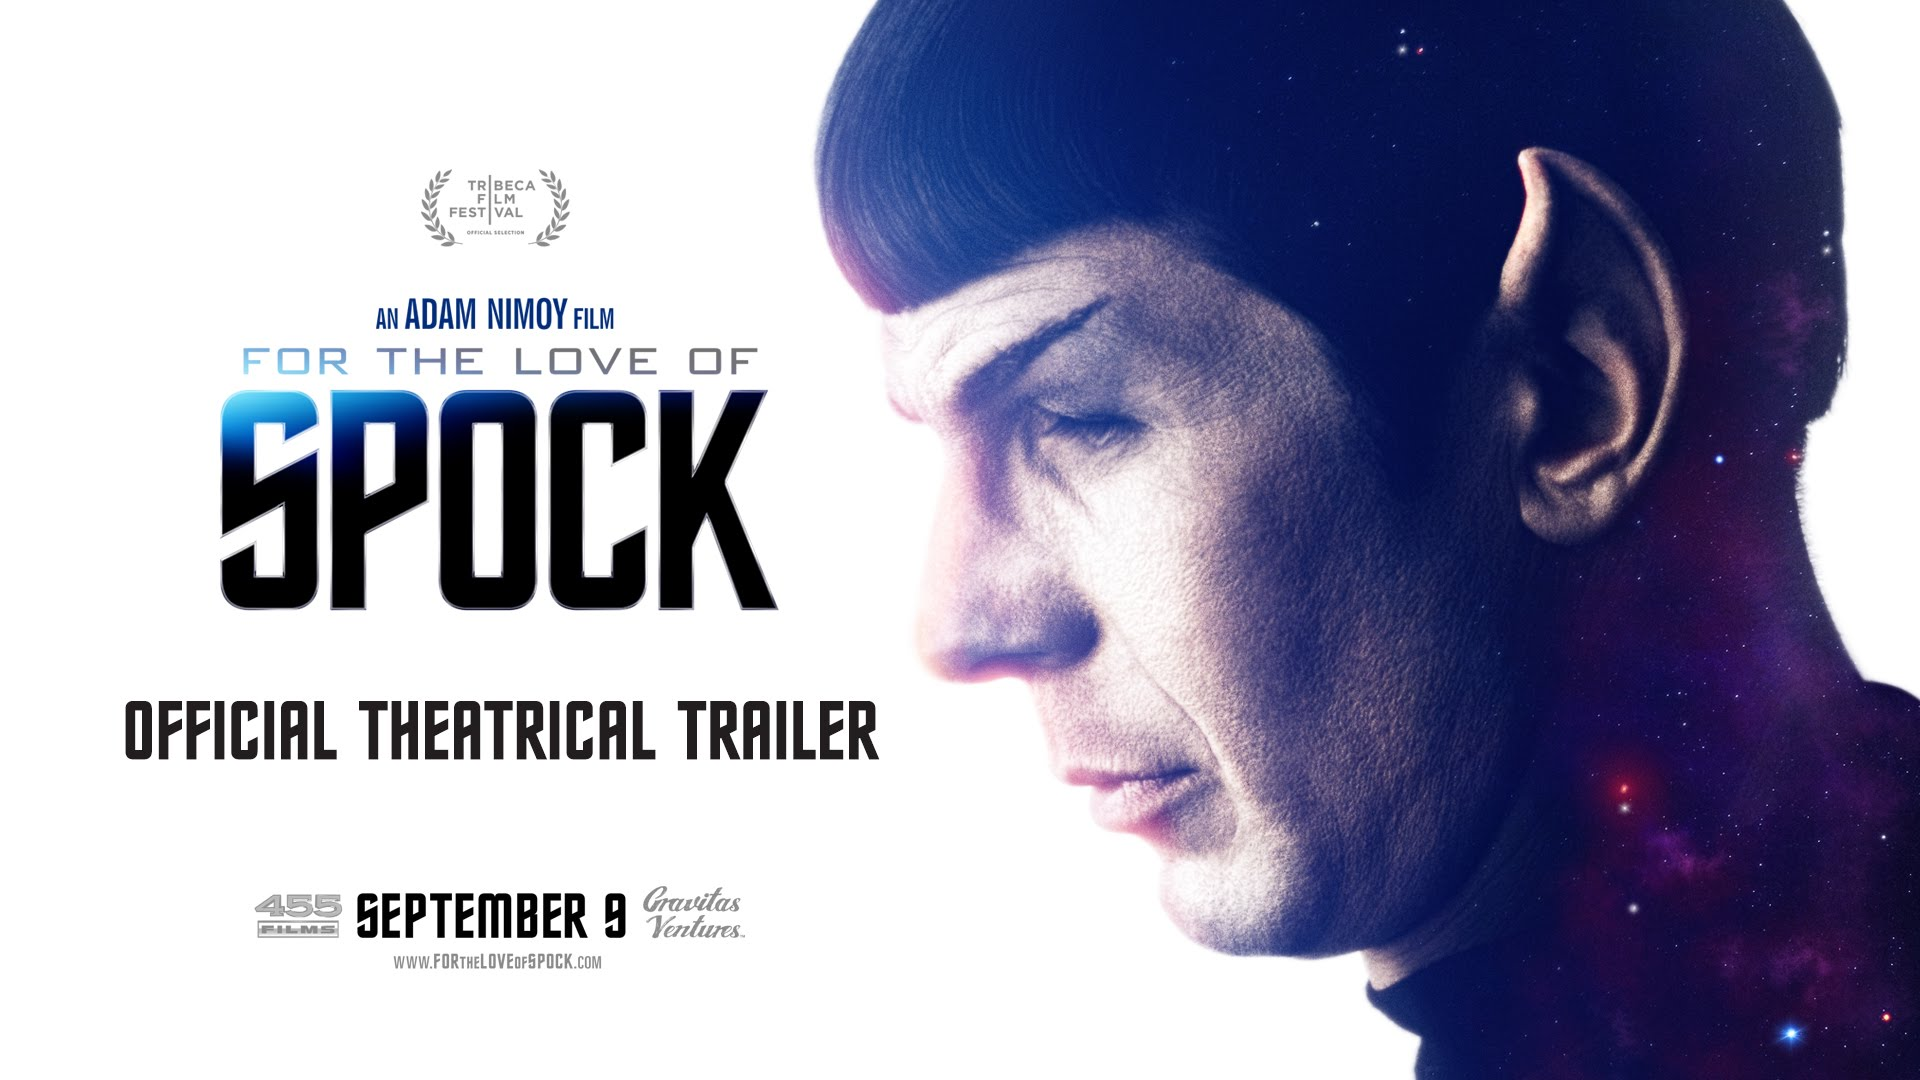 For the Love of Spock movie cover